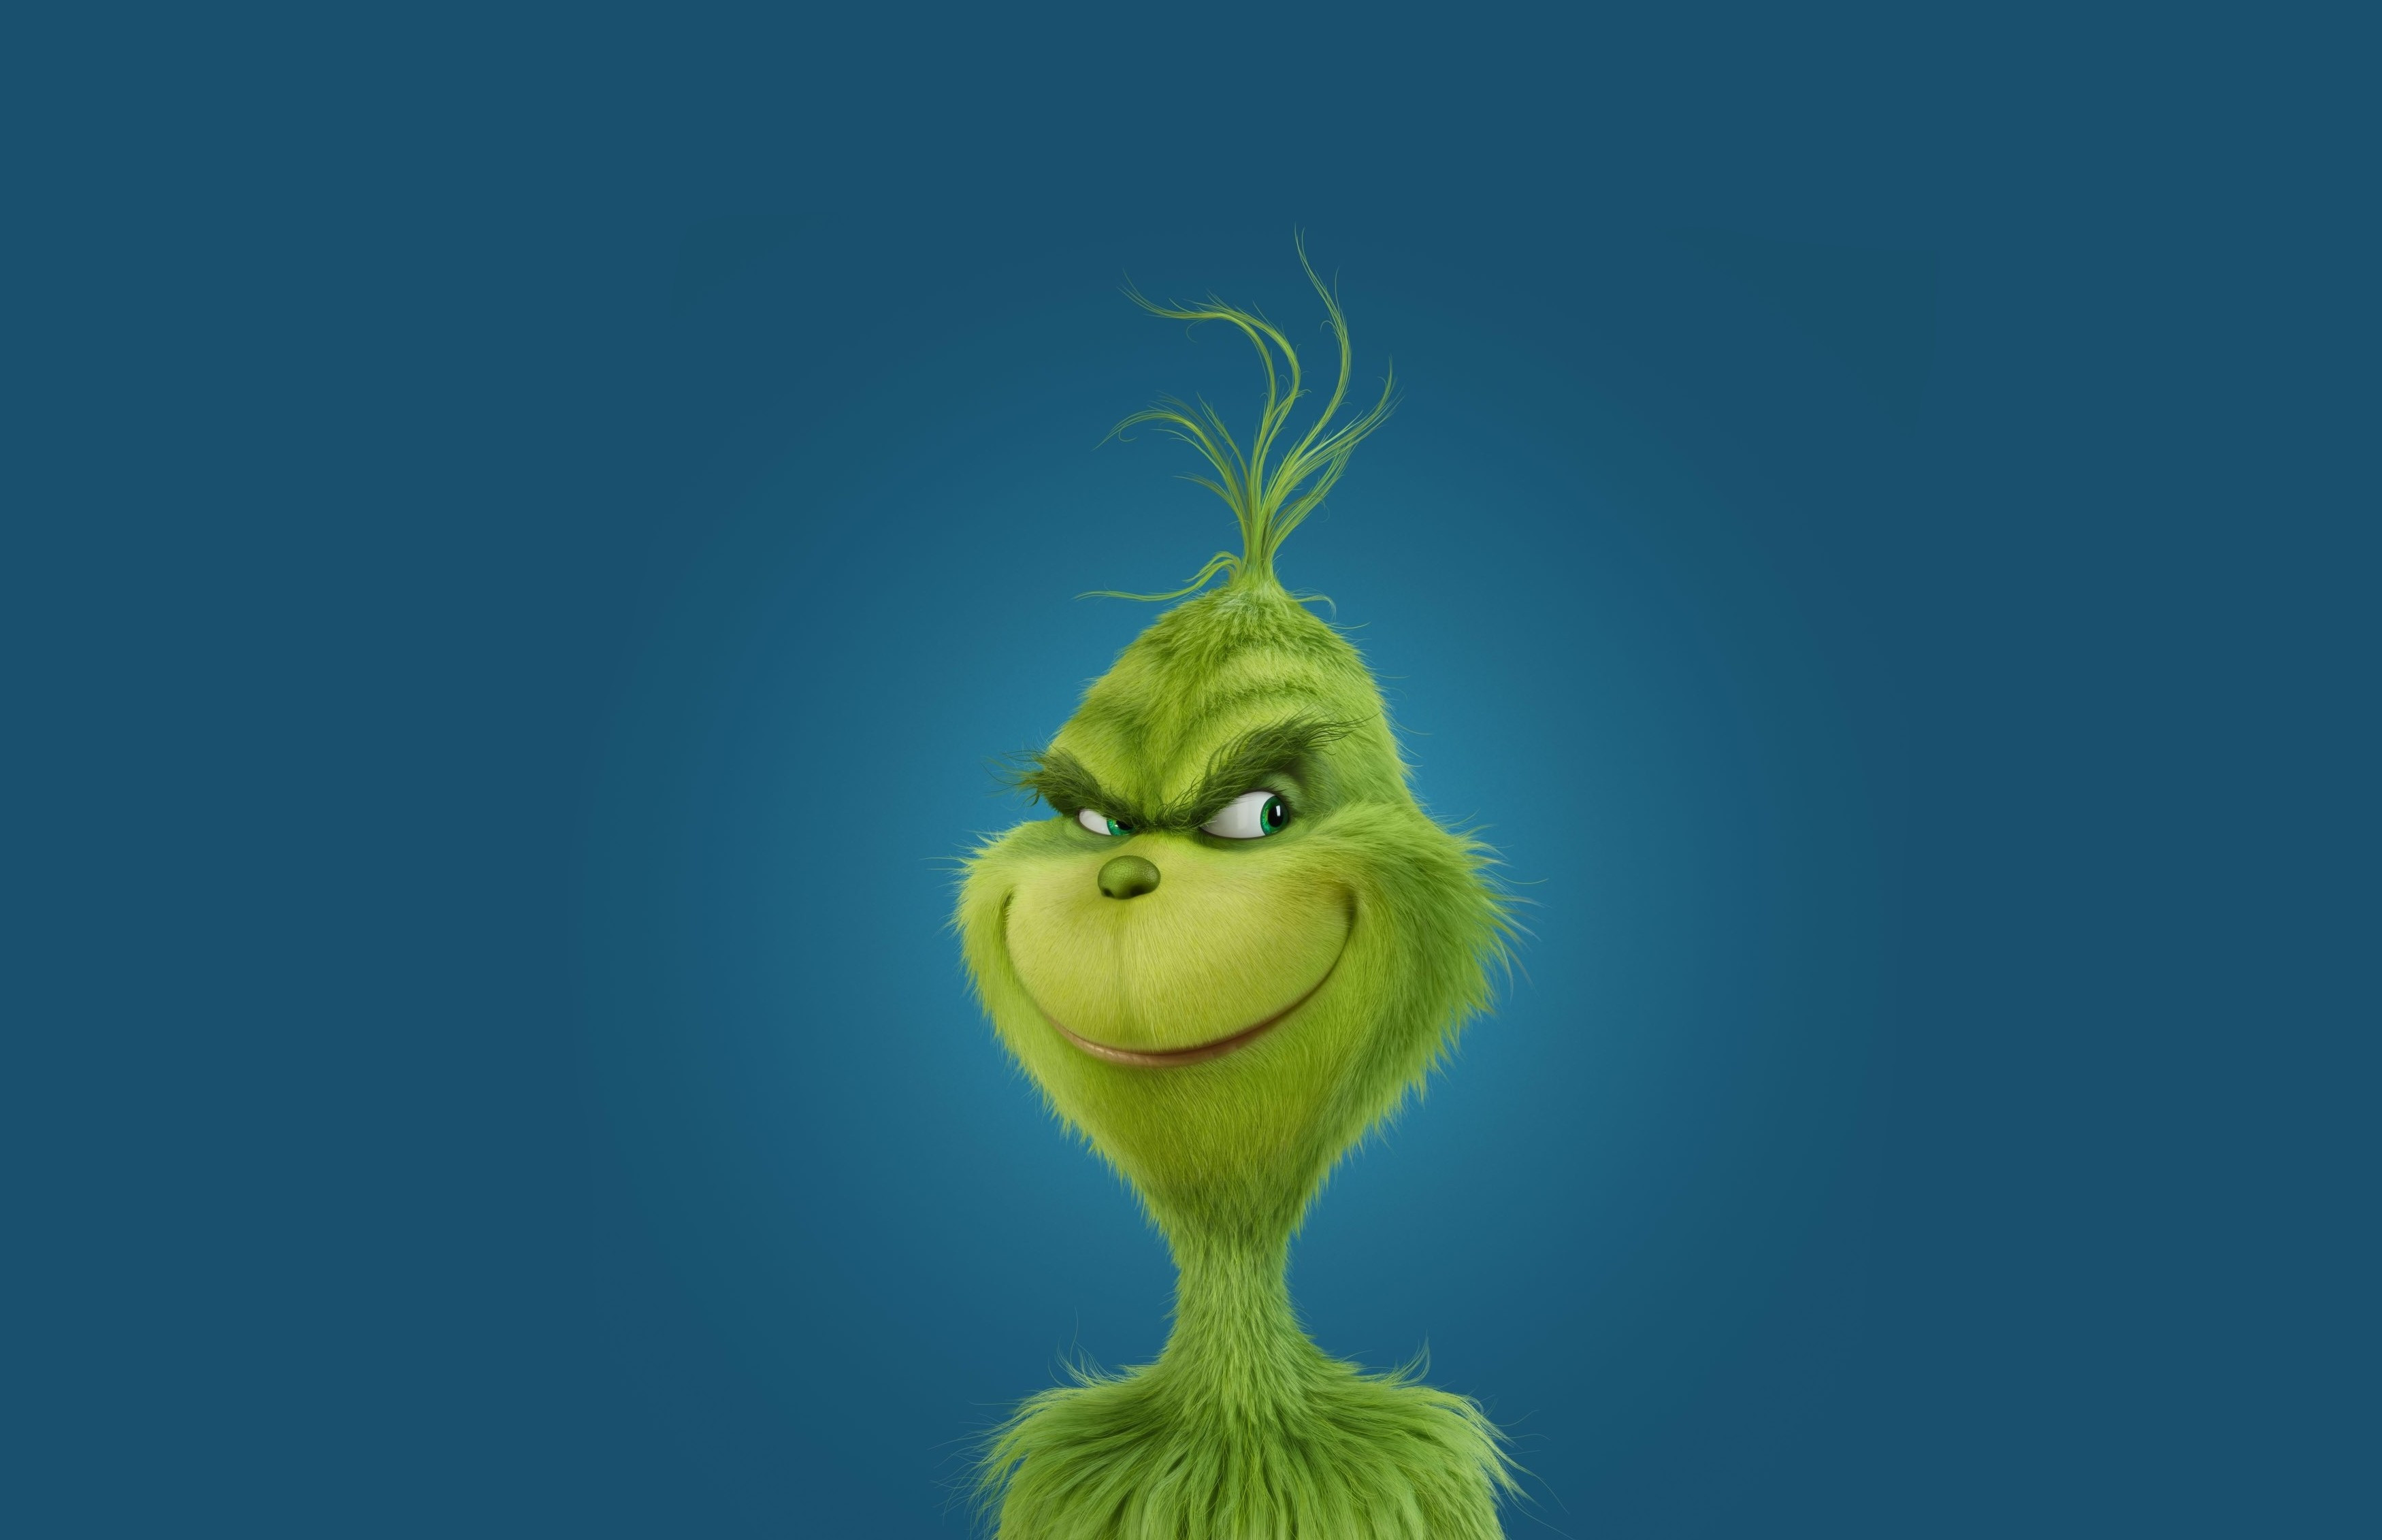 Wallpaper How The Grinch Stole Christmas Green Movies 10336